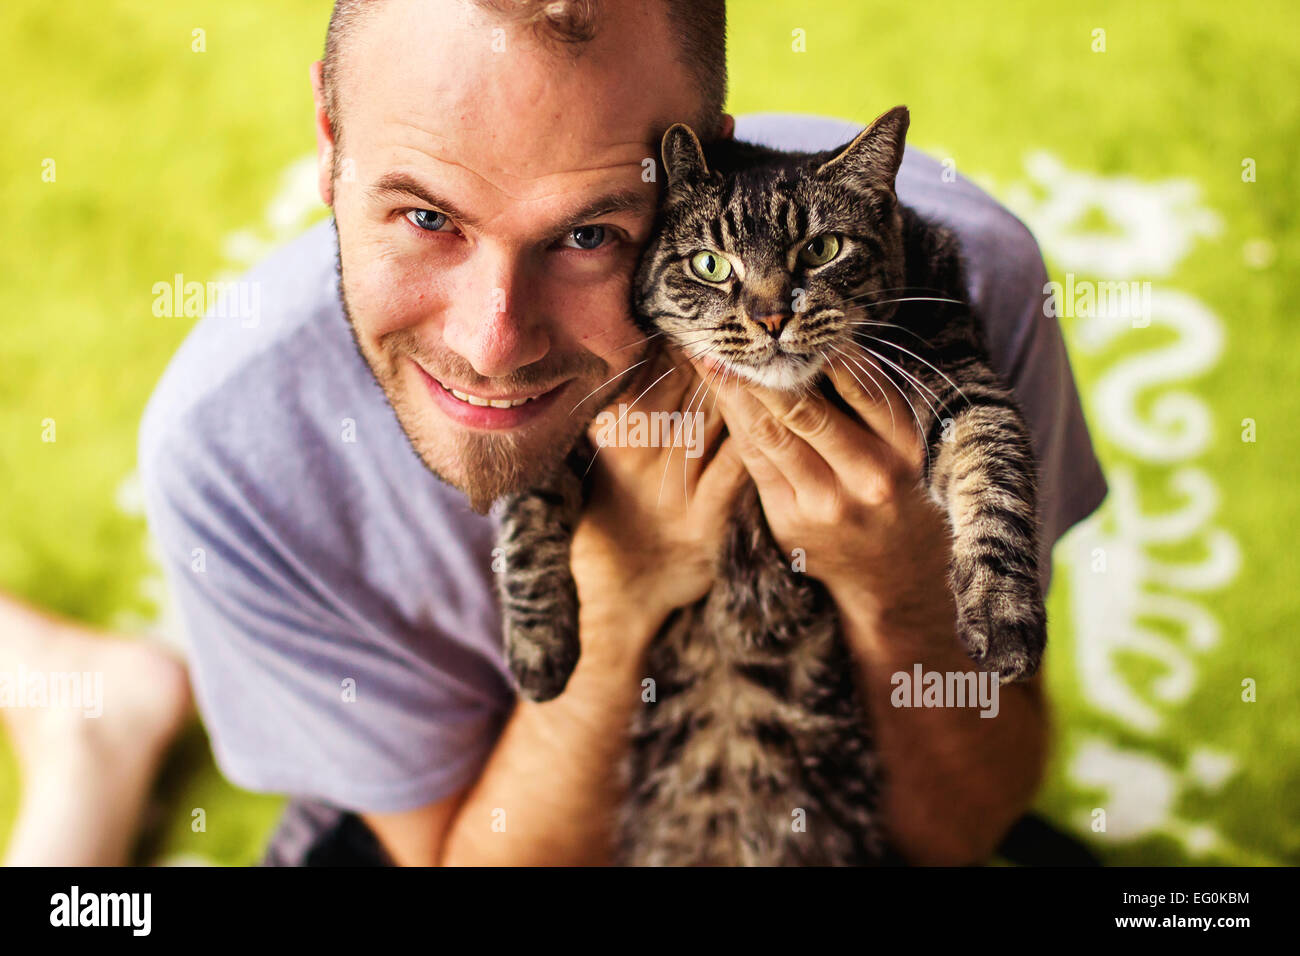 Portrait of man with tabby cat Stock Photo